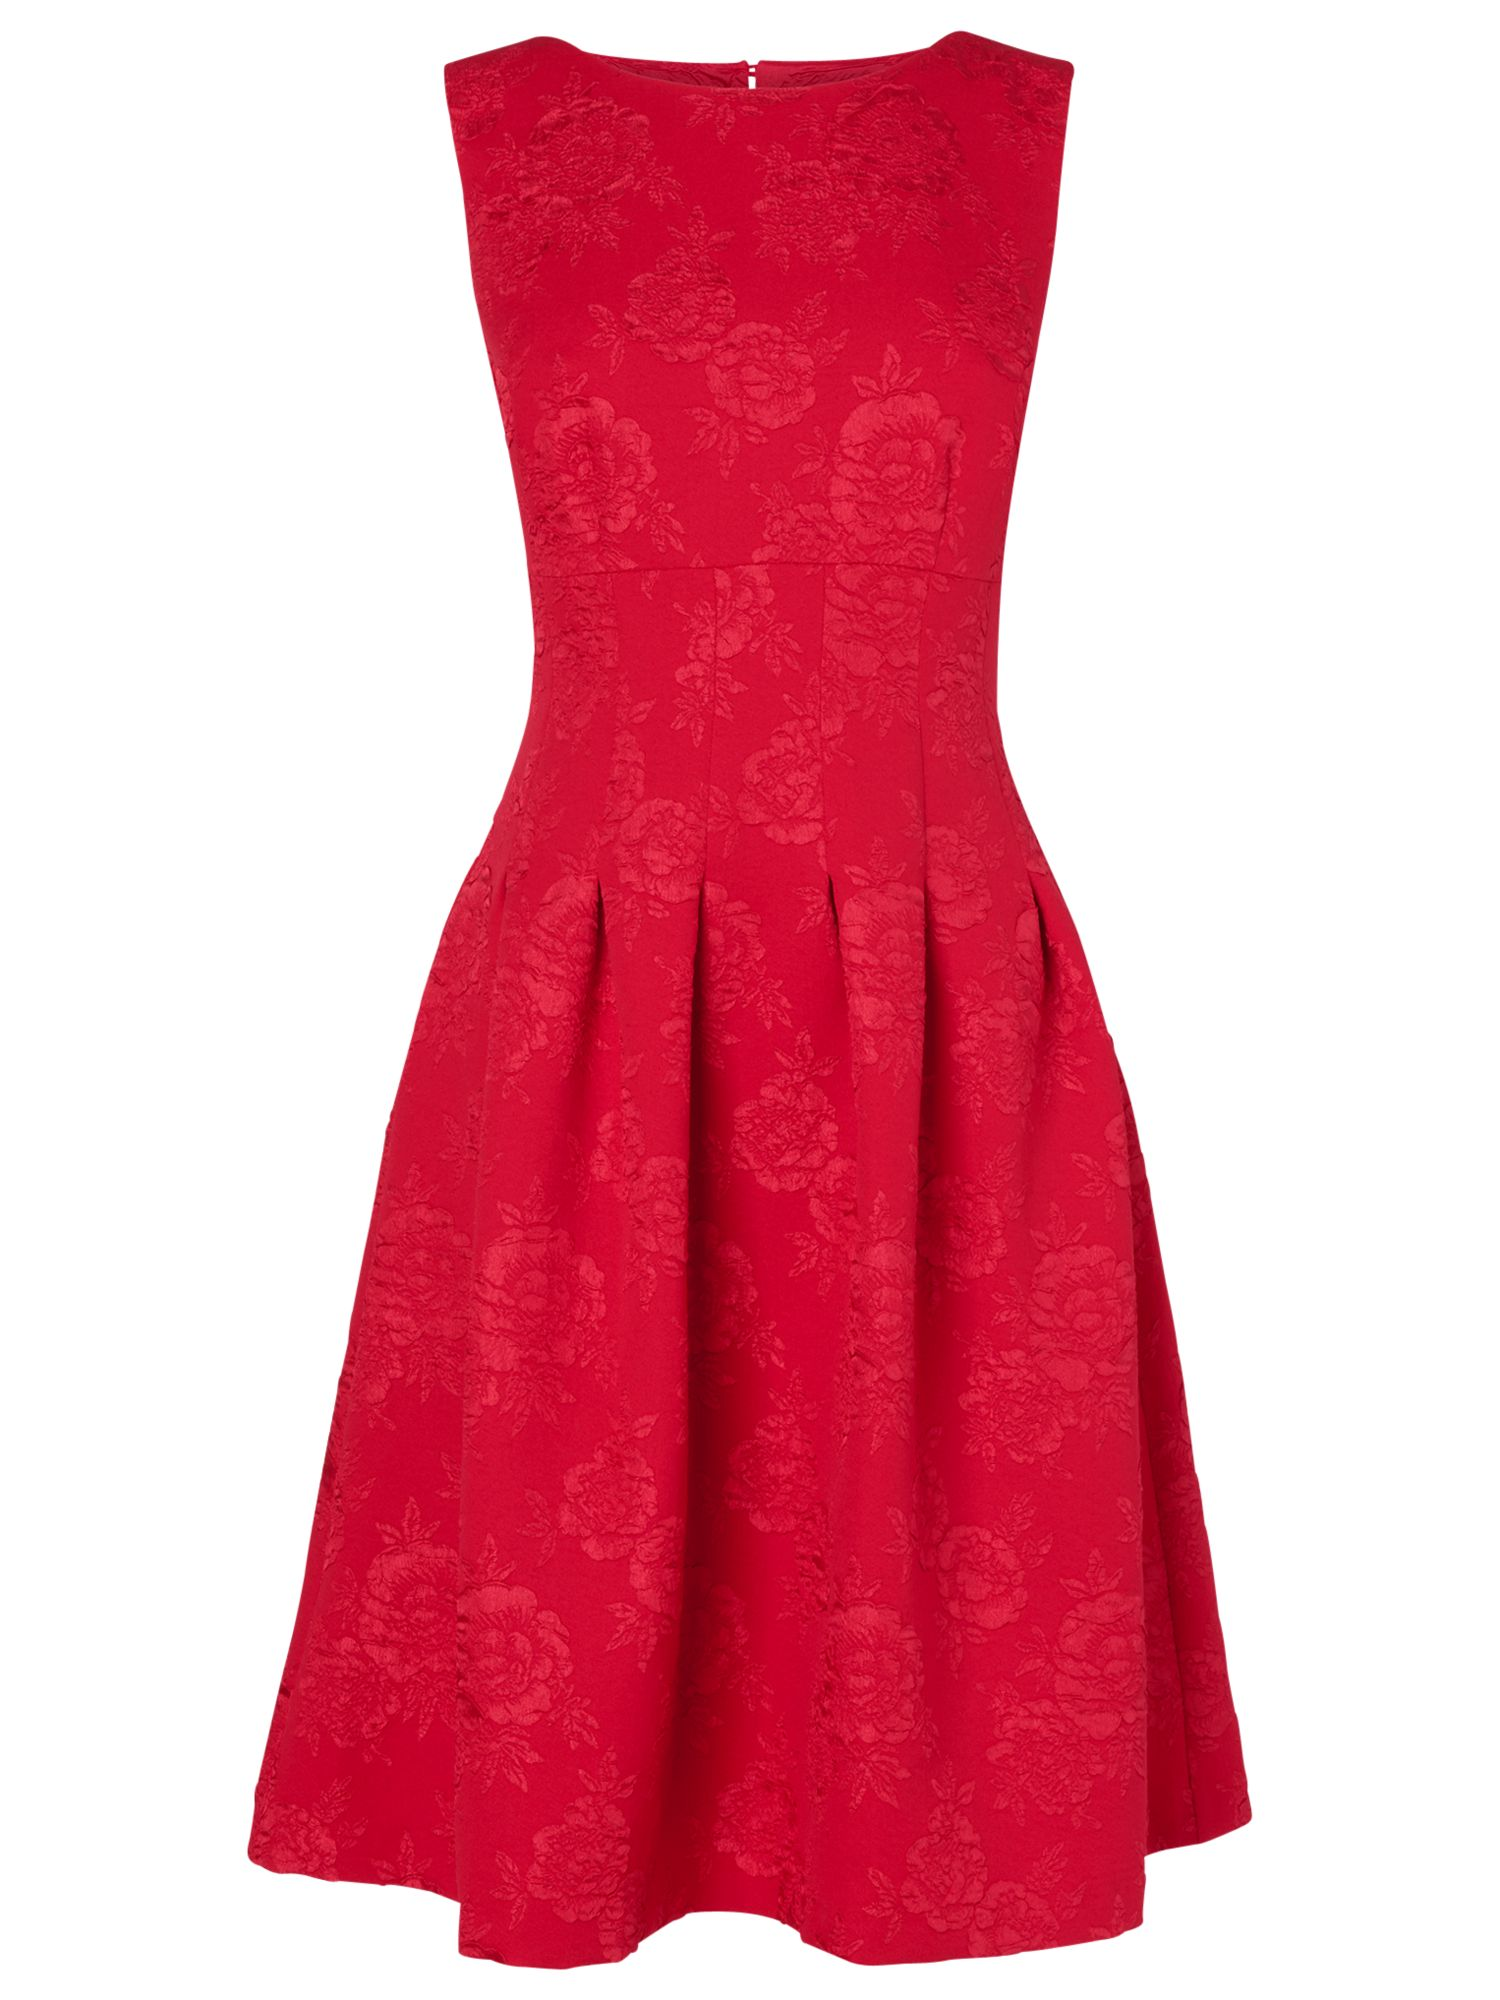 phase eight roberta jacquard dress geranium, phase, eight, roberta, jacquard, dress, geranium, phase eight, 16|14, women, valentines fashion edit, womens dresses, special offers, womenswear offers, 20% off full price phase eight, gifts, wedding, wedding clothing, female guests, womens dresses offers, latest reductions, adult bridesmaids, fashion magazine, brands l-z, inactive womenswear, valentines day, red dress, 1811465